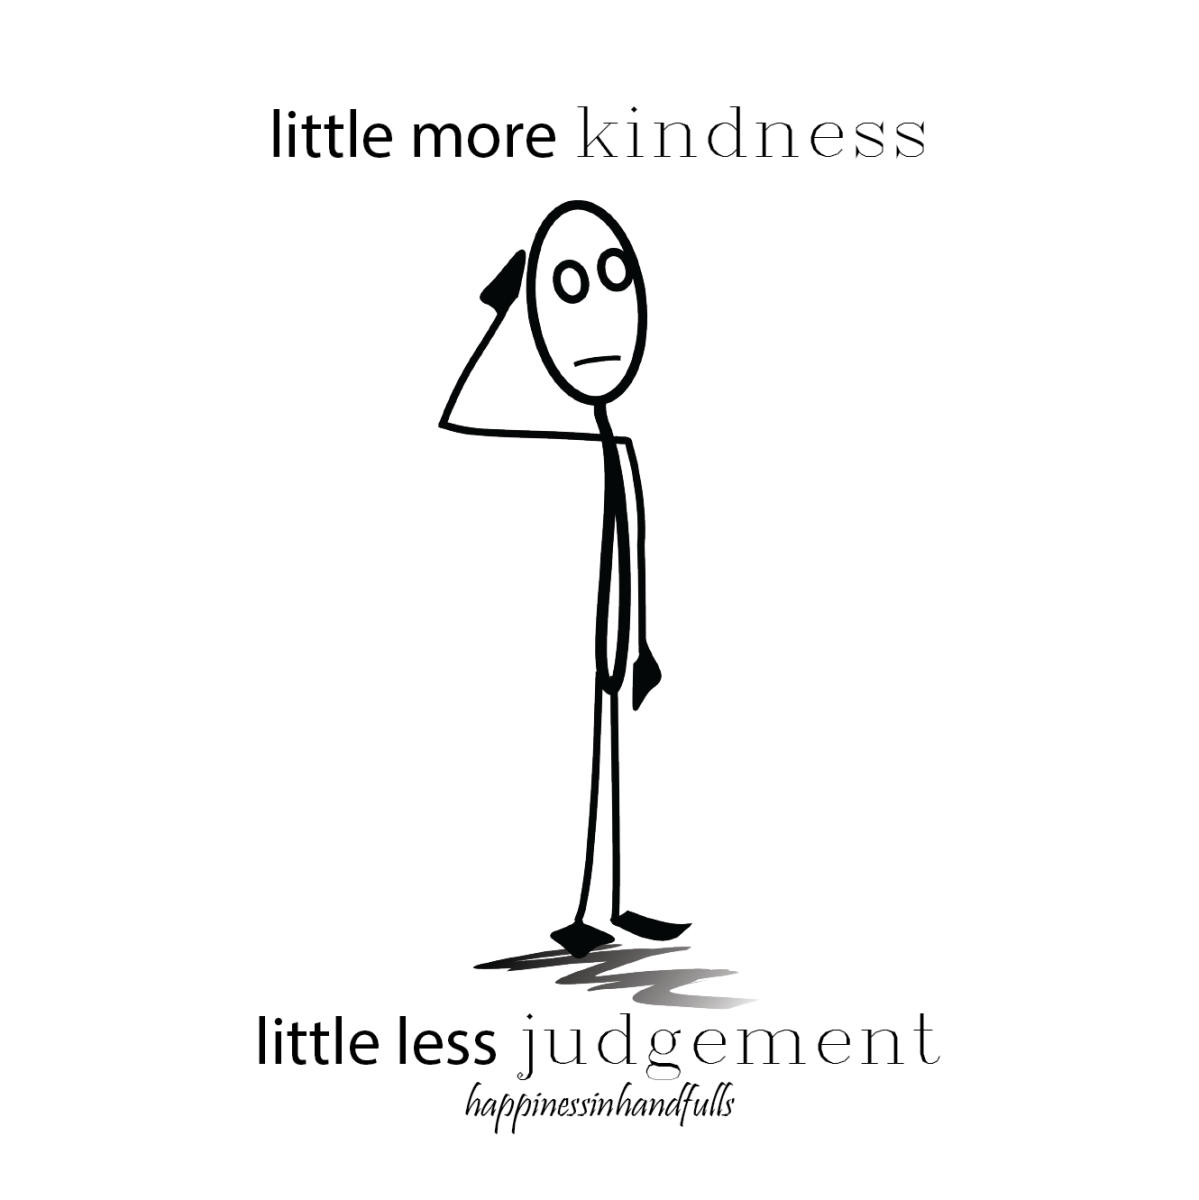 little more kindness, little less judgement